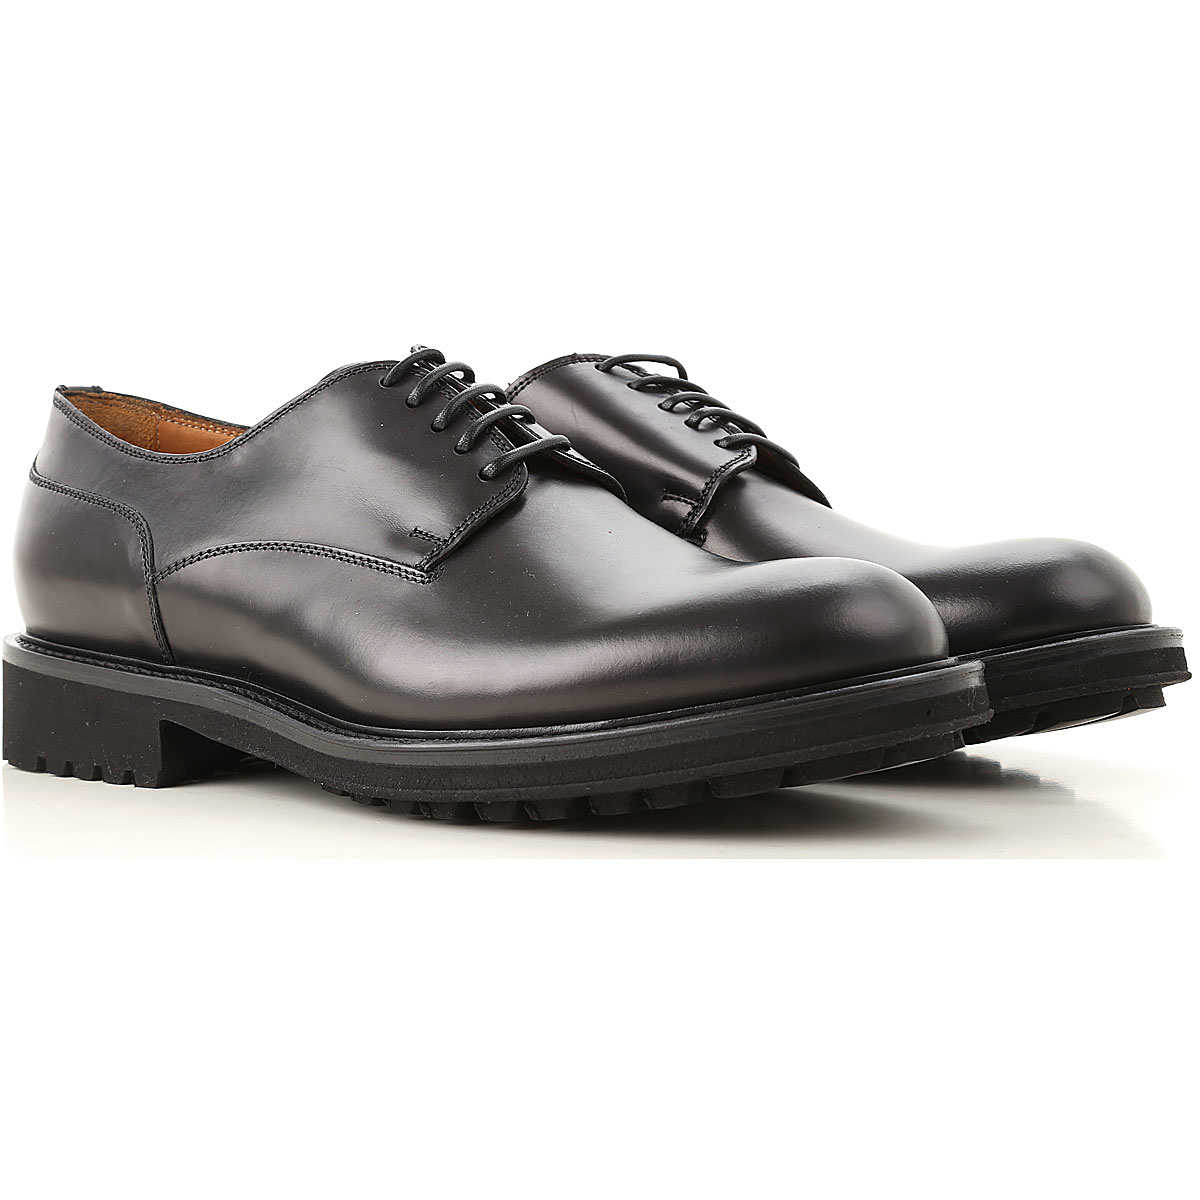 Doucals Lace Up Shoes for Men Oxfords 10.5 6.5 Derbies and Brogues On Sale UK - GOOFASH